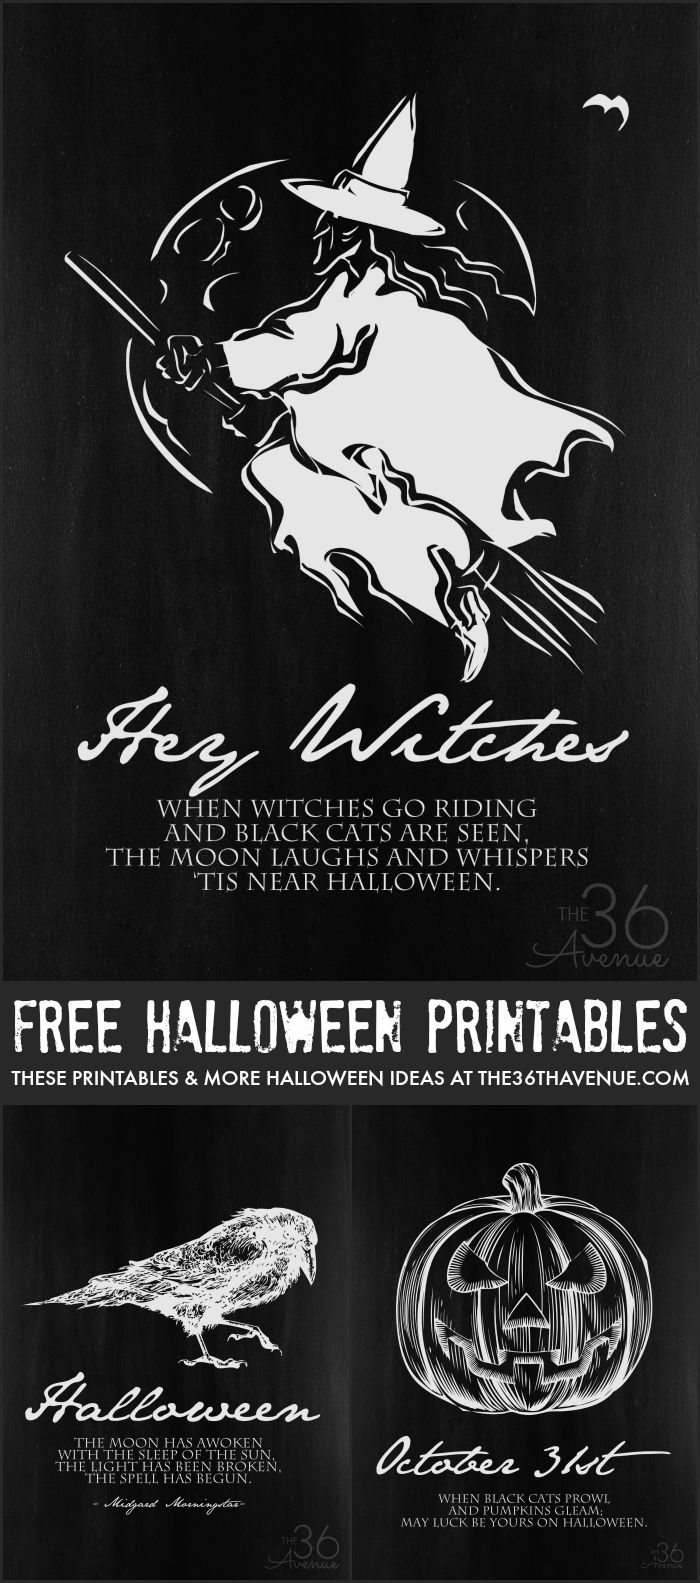 Halloween Printable Set at the36thavenue.com.jpg